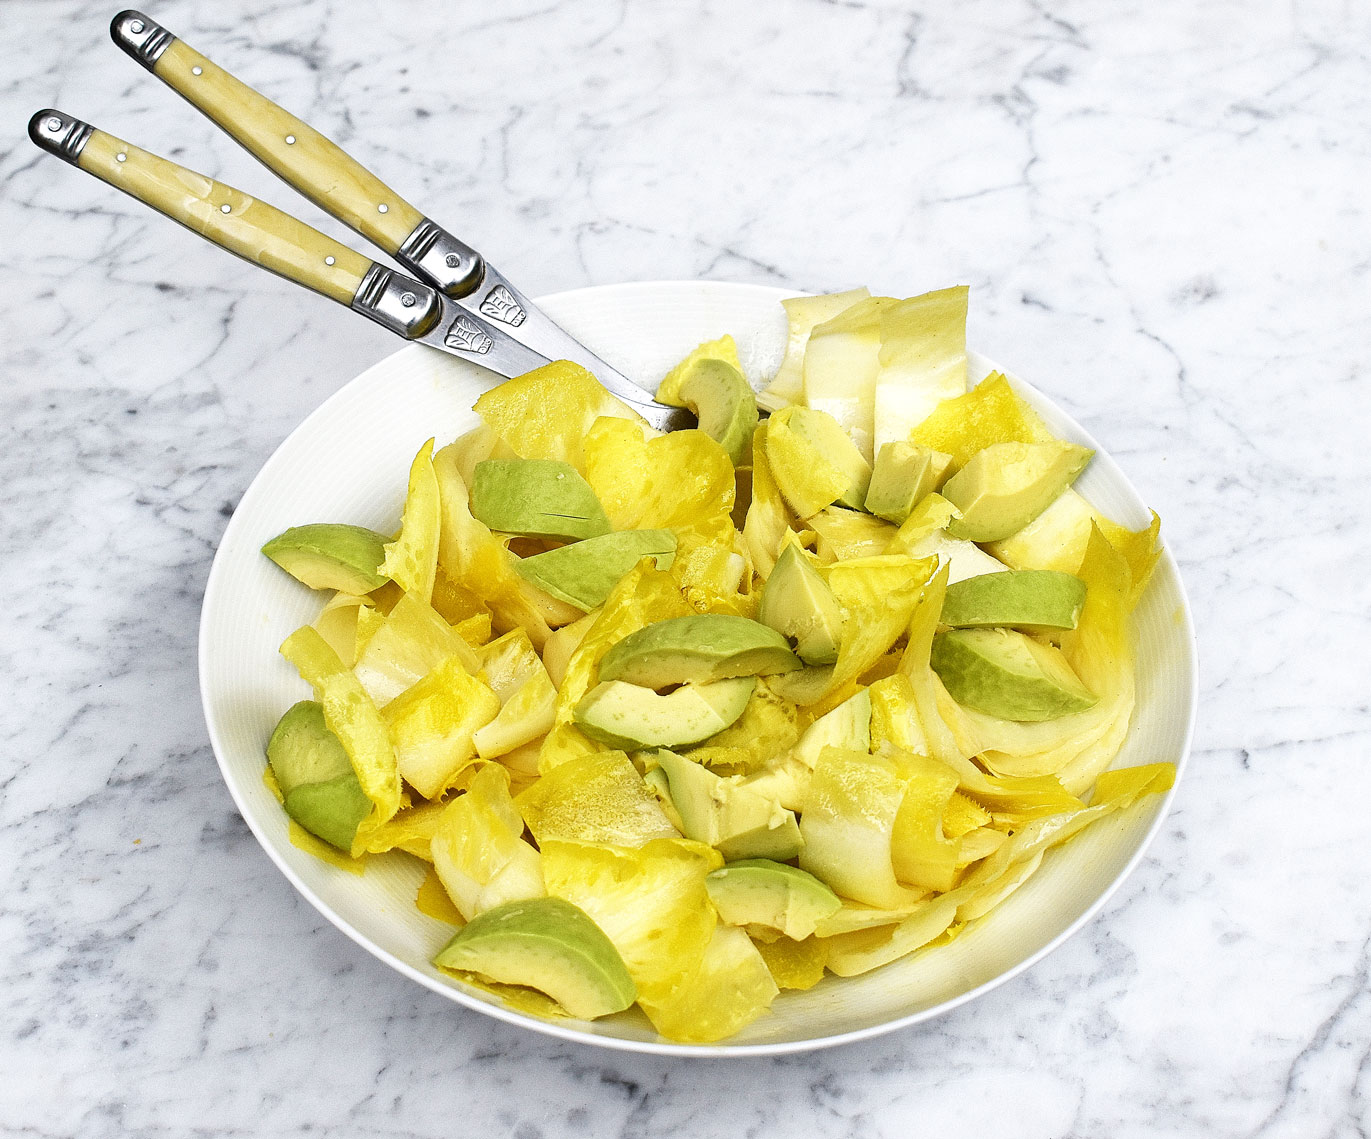 Endive (chicory) & avocado salad wit